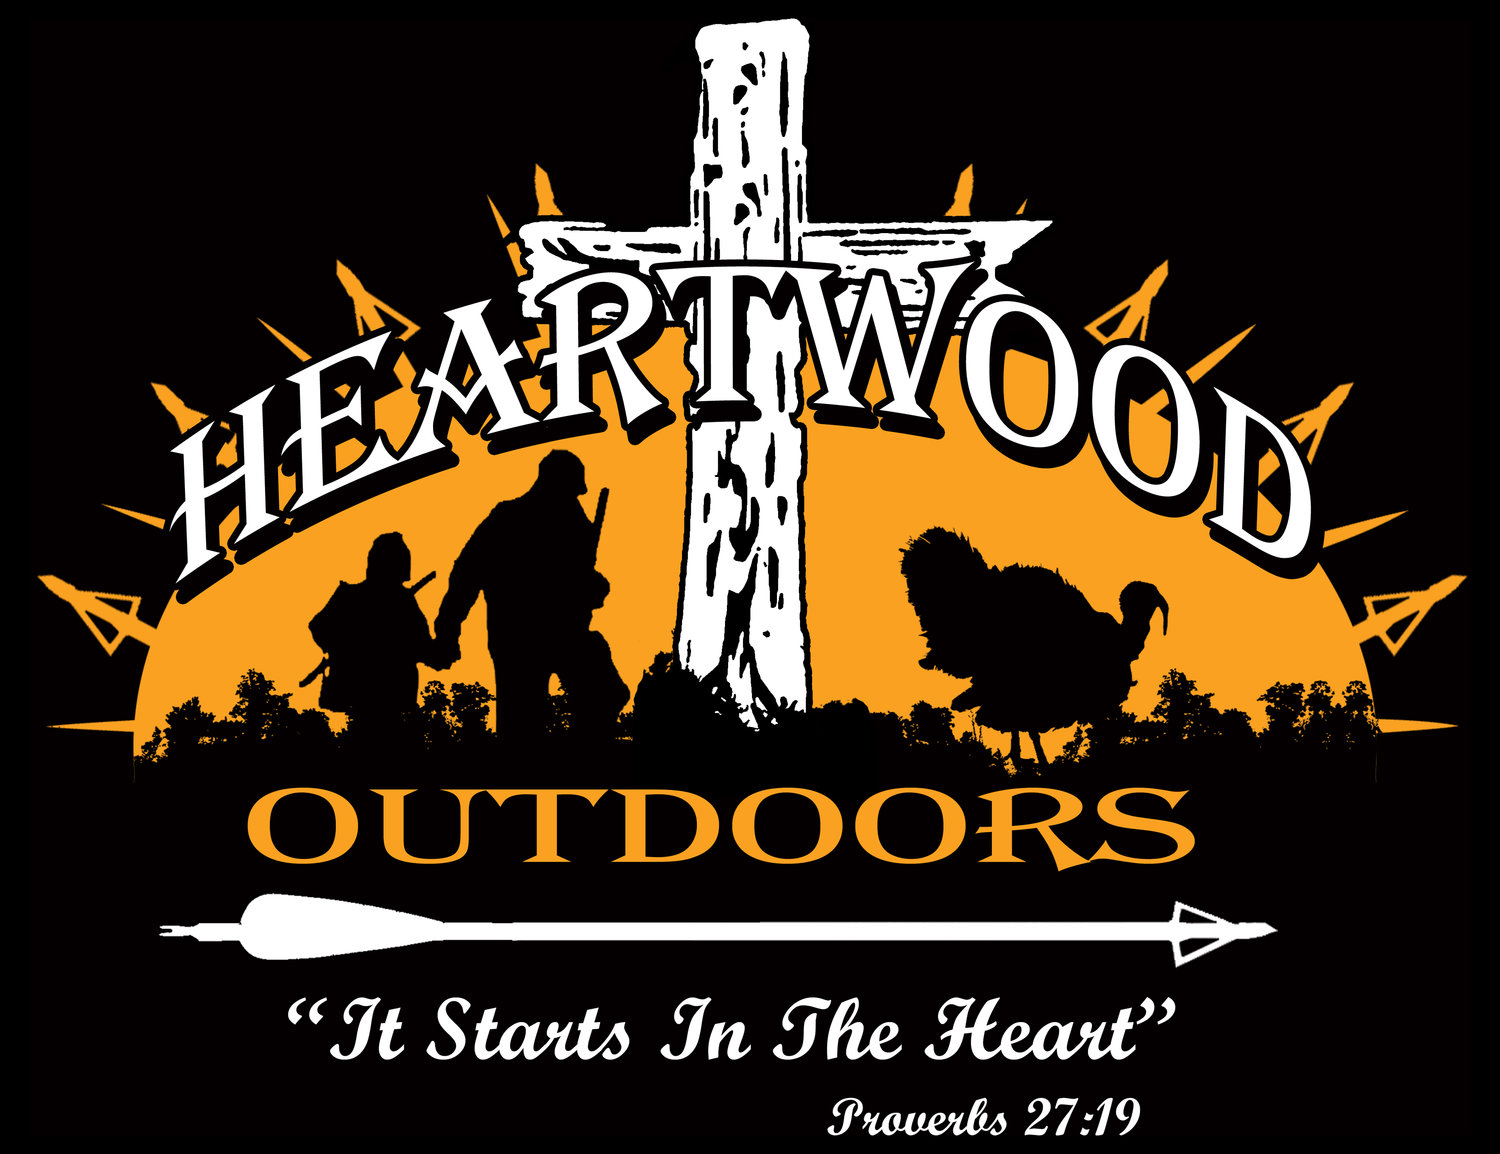 Heartwood Outdoors